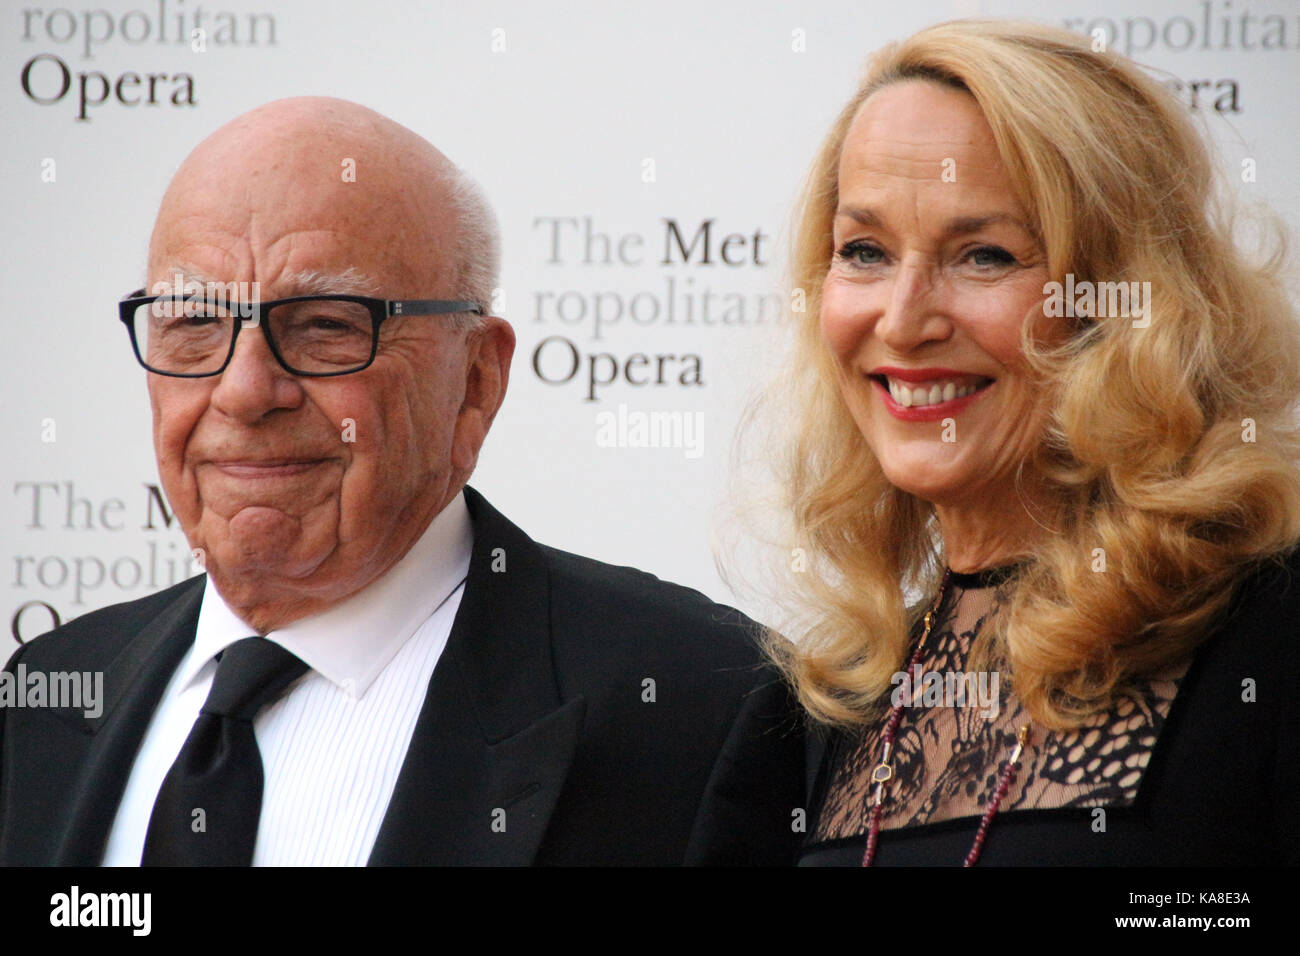 New York, US. 25th Sep, 2017. Media mogul Rupert Murdoch and former model Jerry Hall attend the season opening of - Stock Image